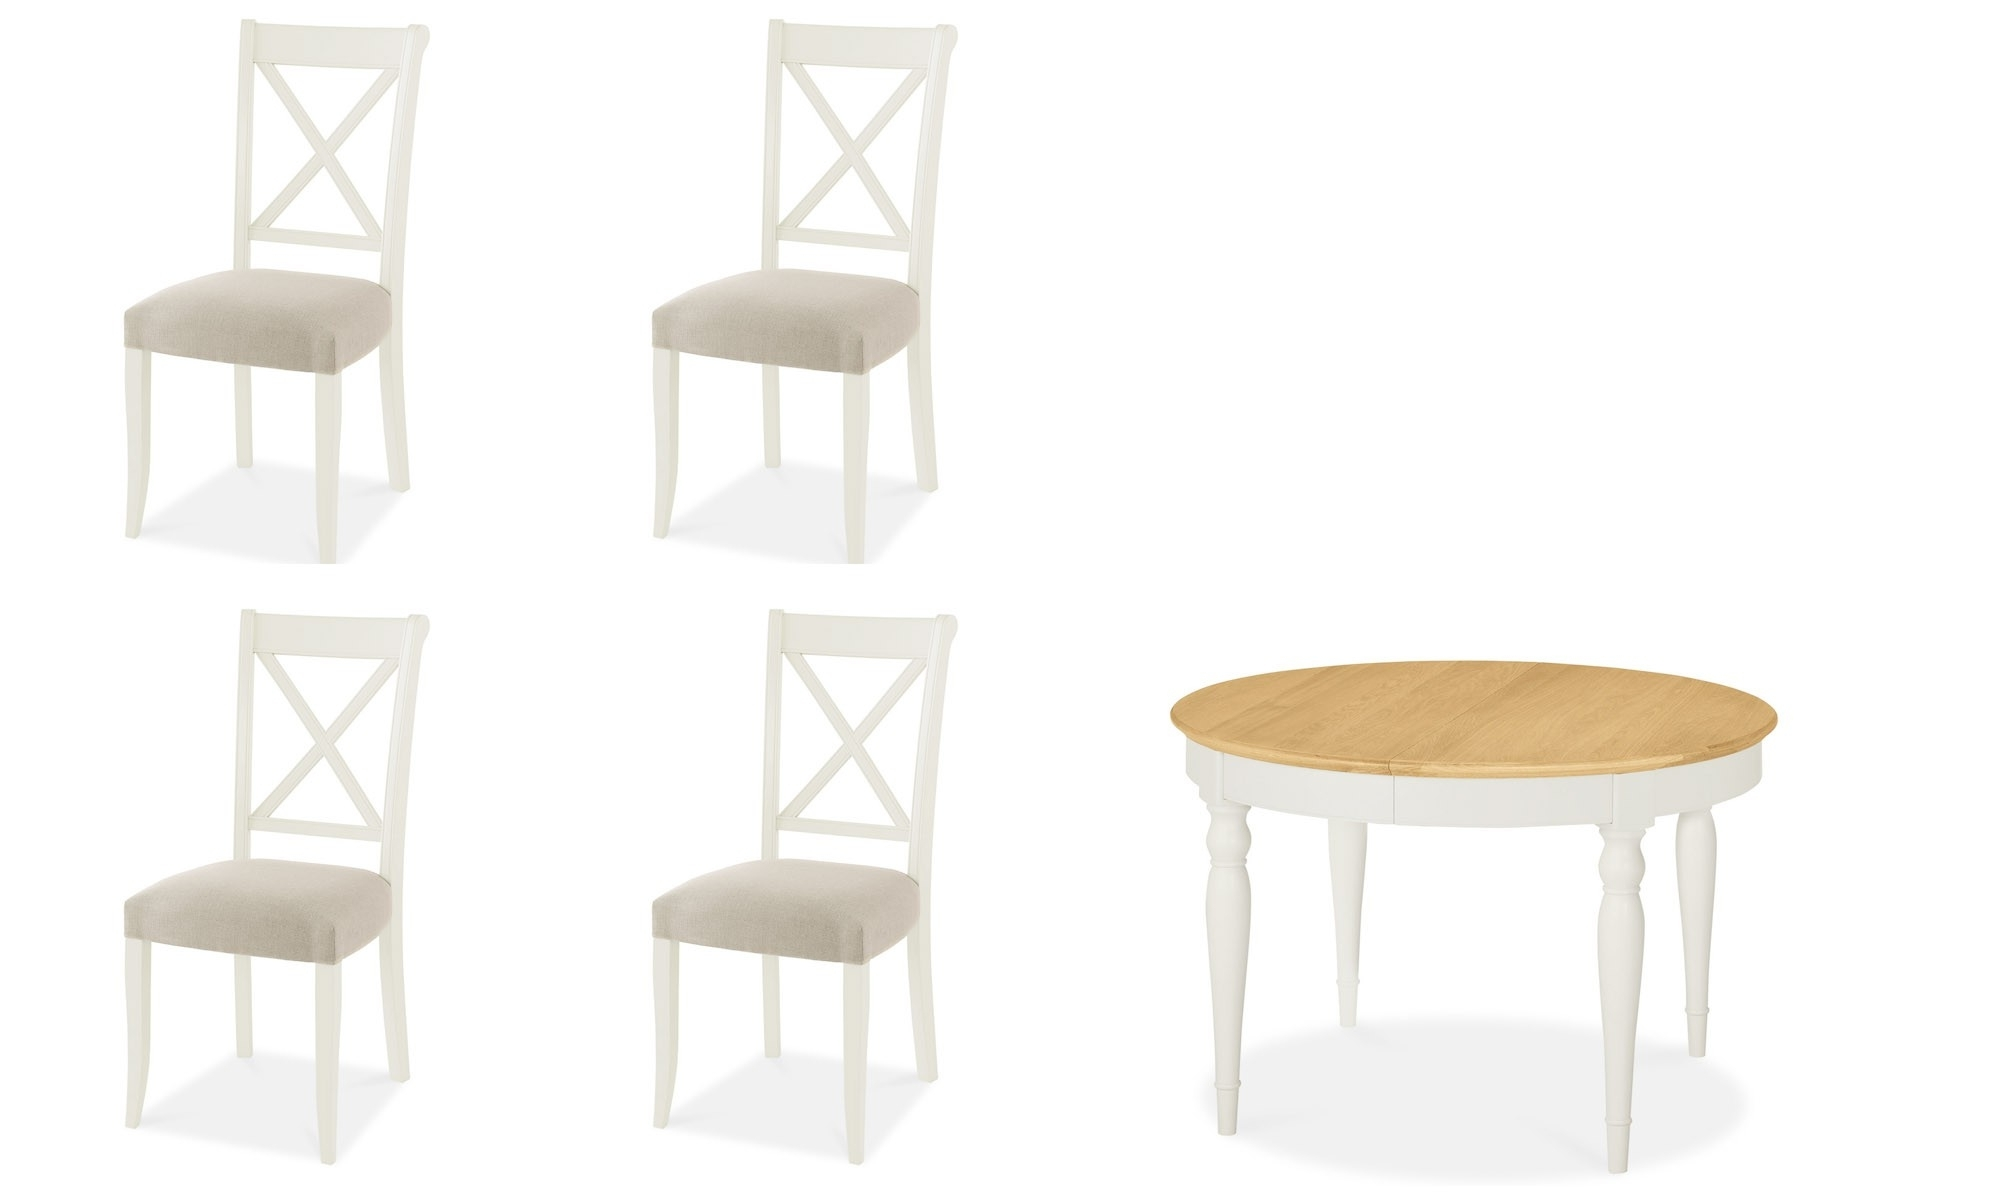 Georgie - Round Extending Dining Table And Chairs In Cream - Oak Top intended for Recent Extending Dining Tables And 4 Chairs